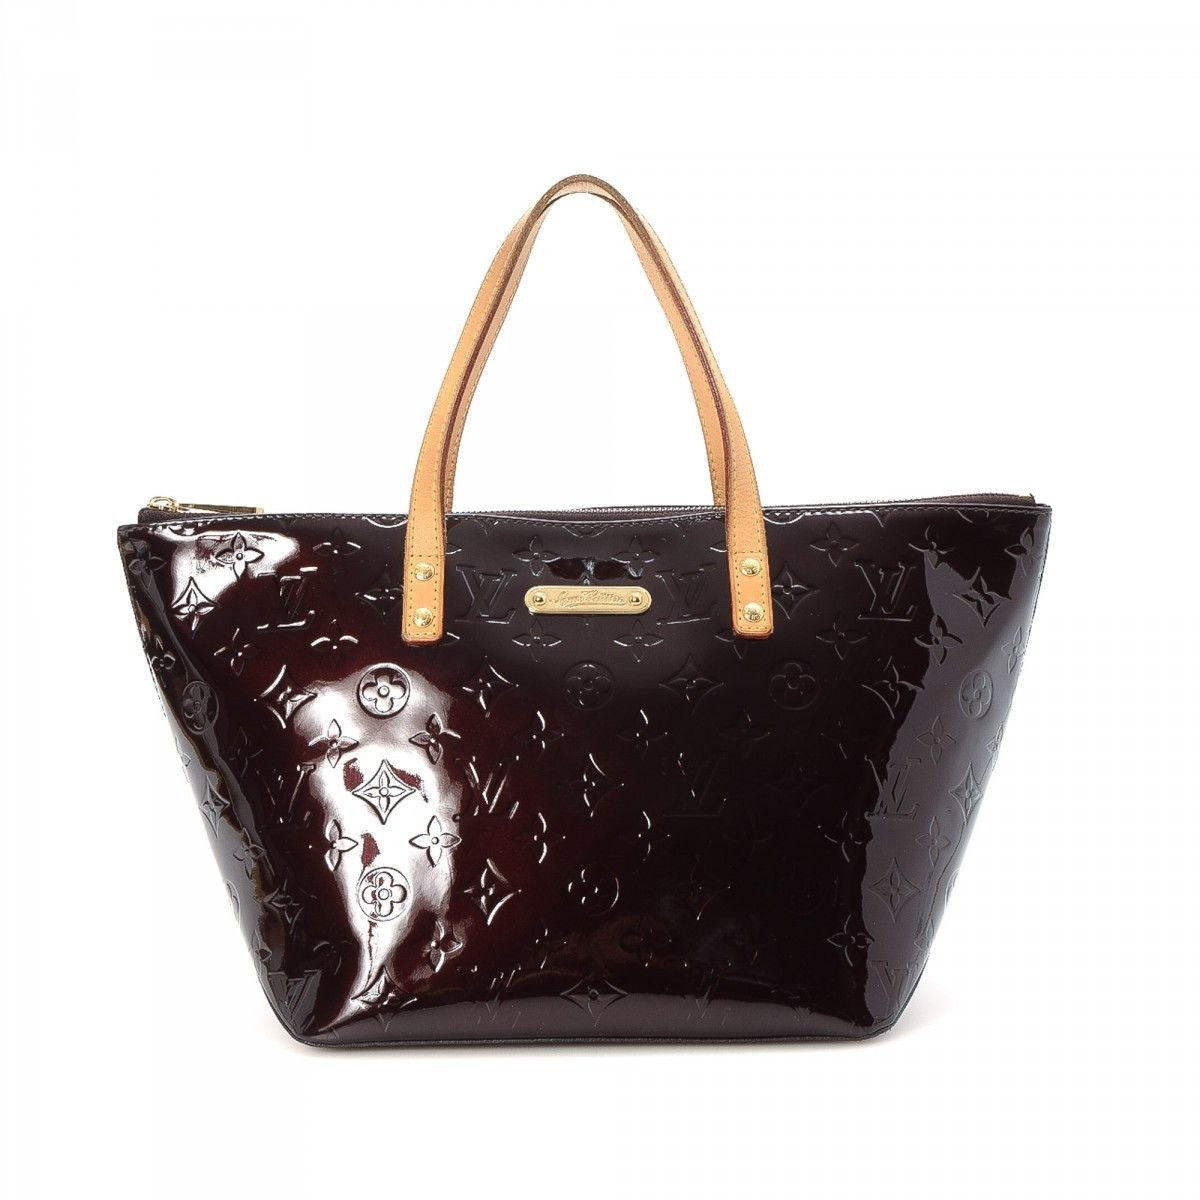 3f057b5cc448 Louis Vuitton Bellevue PM Monogram Vernis Patent leather - LXRandCo ...